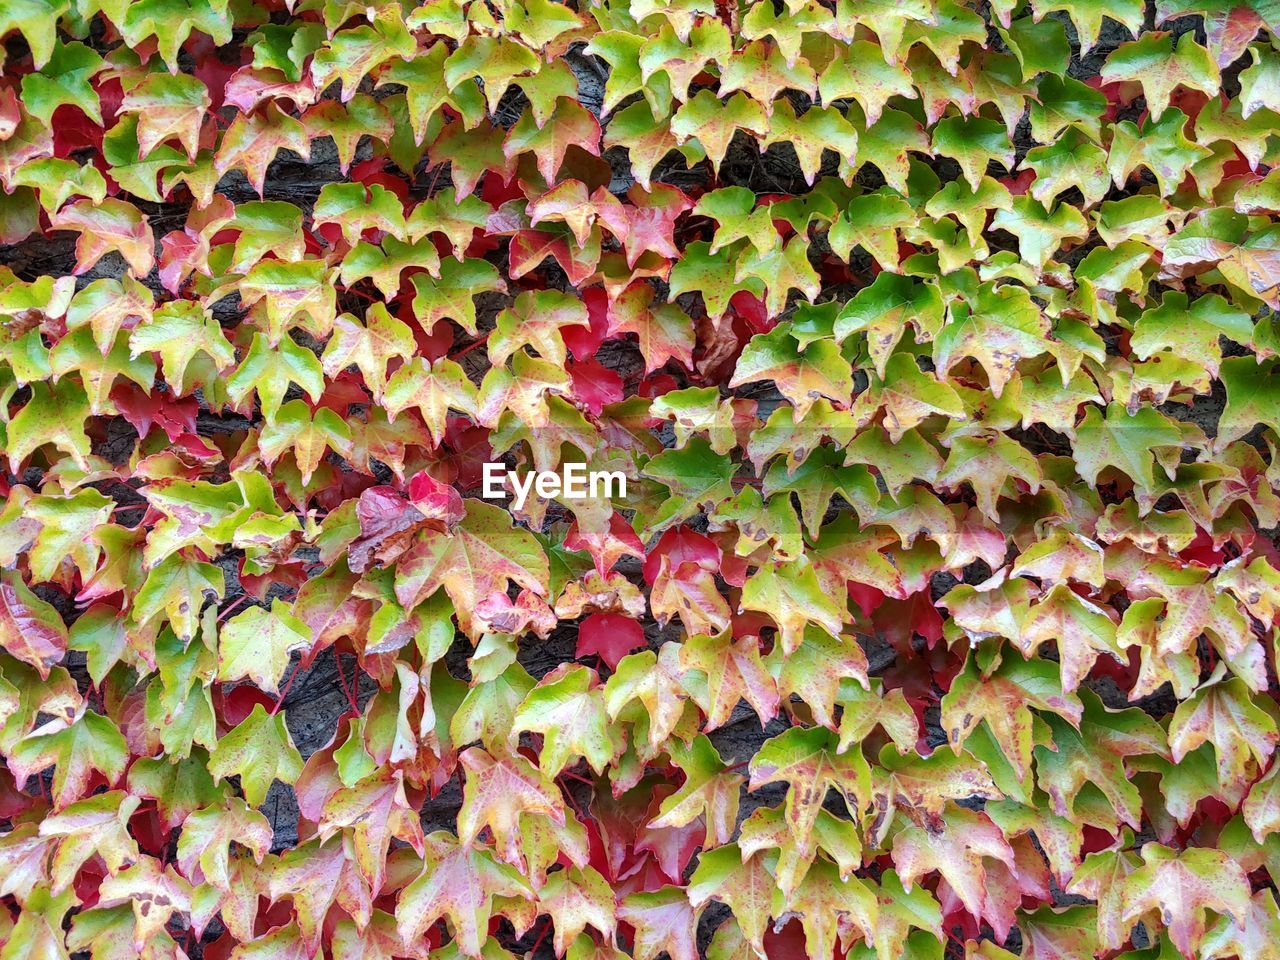 full frame, backgrounds, plant part, leaf, growth, no people, beauty in nature, day, close-up, plant, ivy, green color, nature, abundance, outdoors, land, autumn, tranquility, natural pattern, freshness, change, leaves